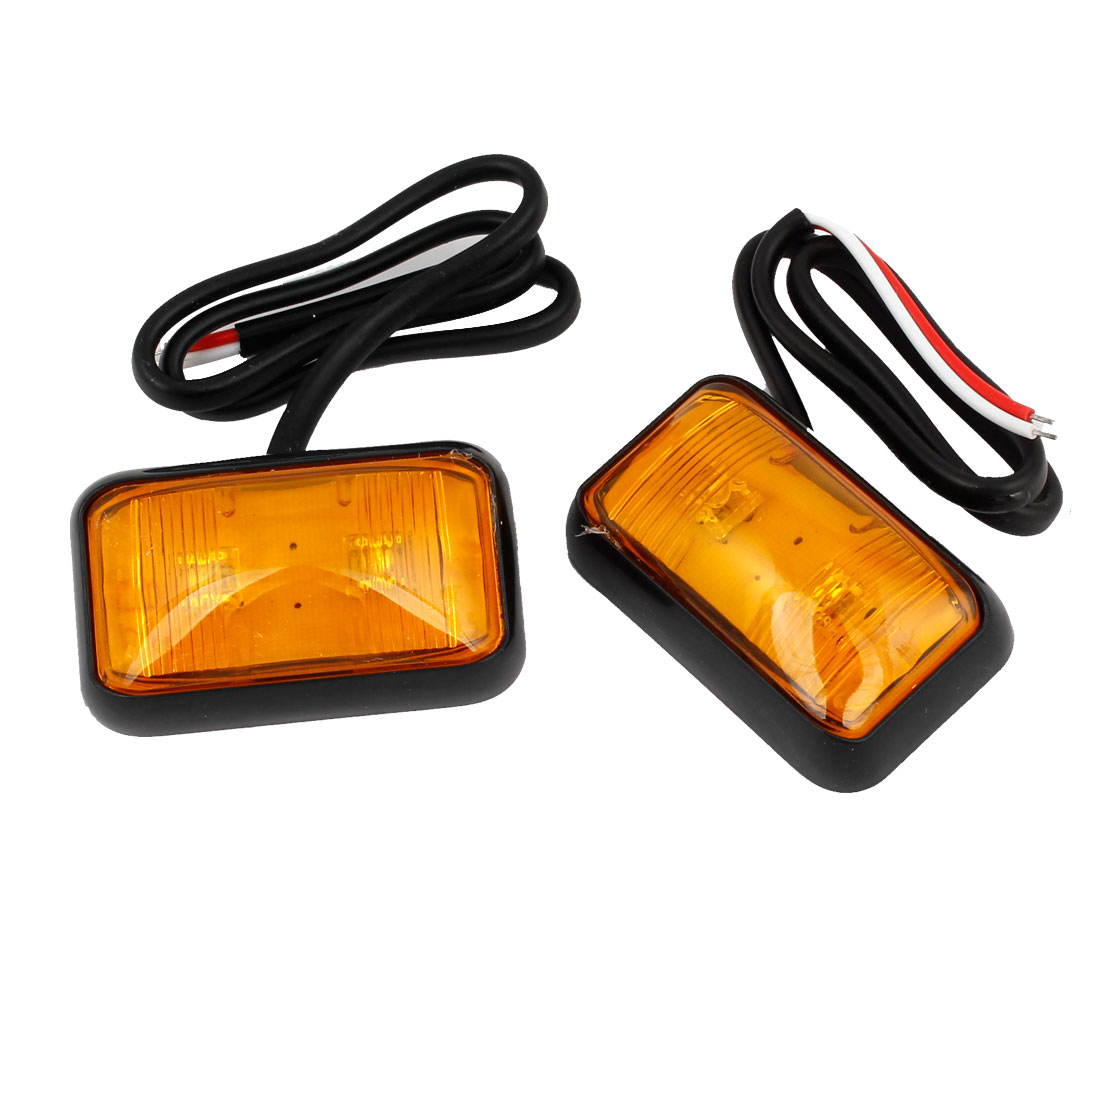 2 Pcs 2 LED Traffic Emergency Hazard Caution Light Side Marker Lamp Yellow internal